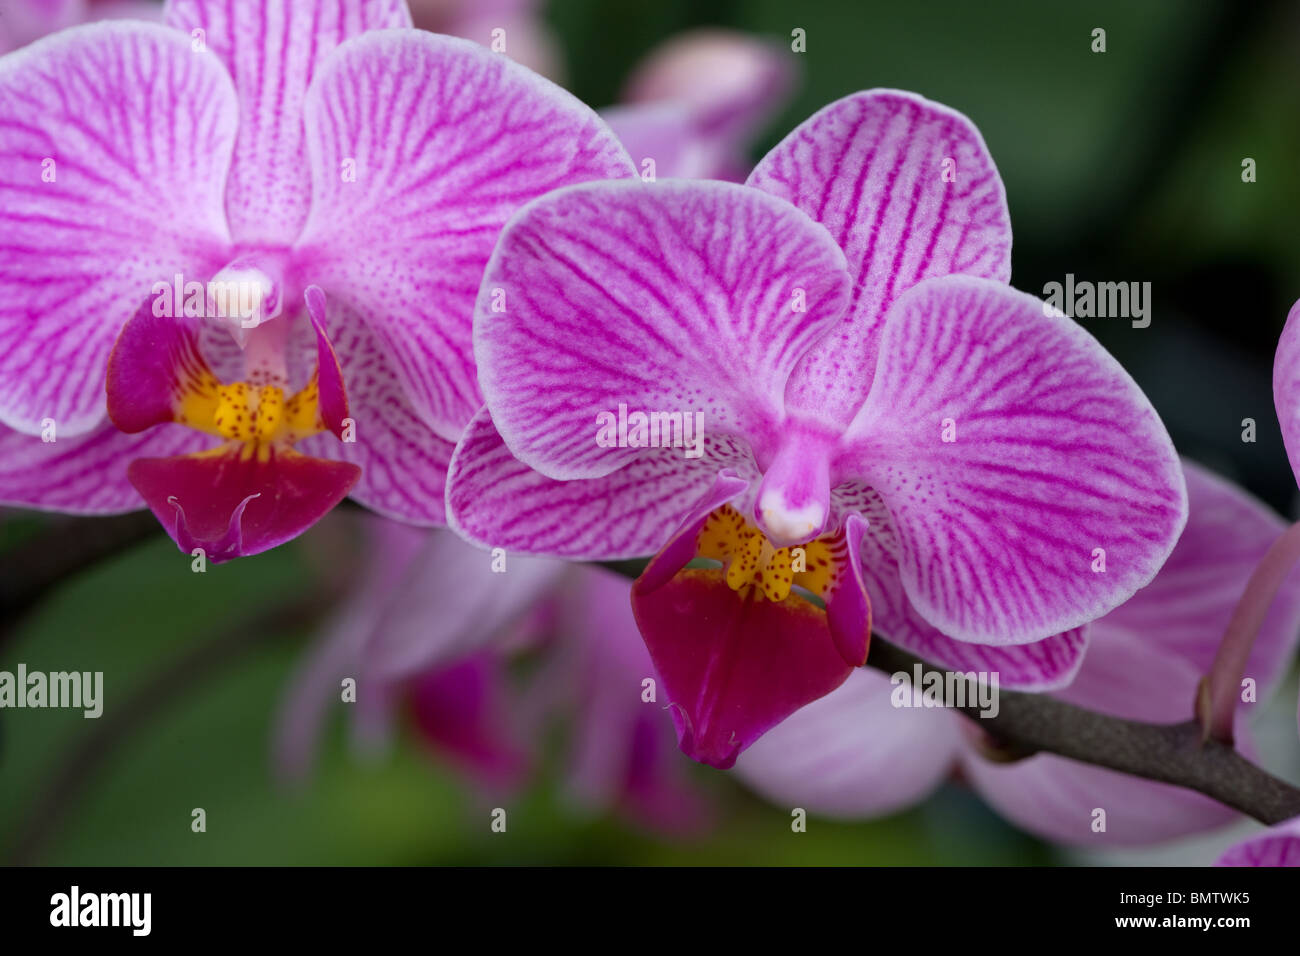 orchid, flowers, hobbies, gardening, green, nature, - Stock Image